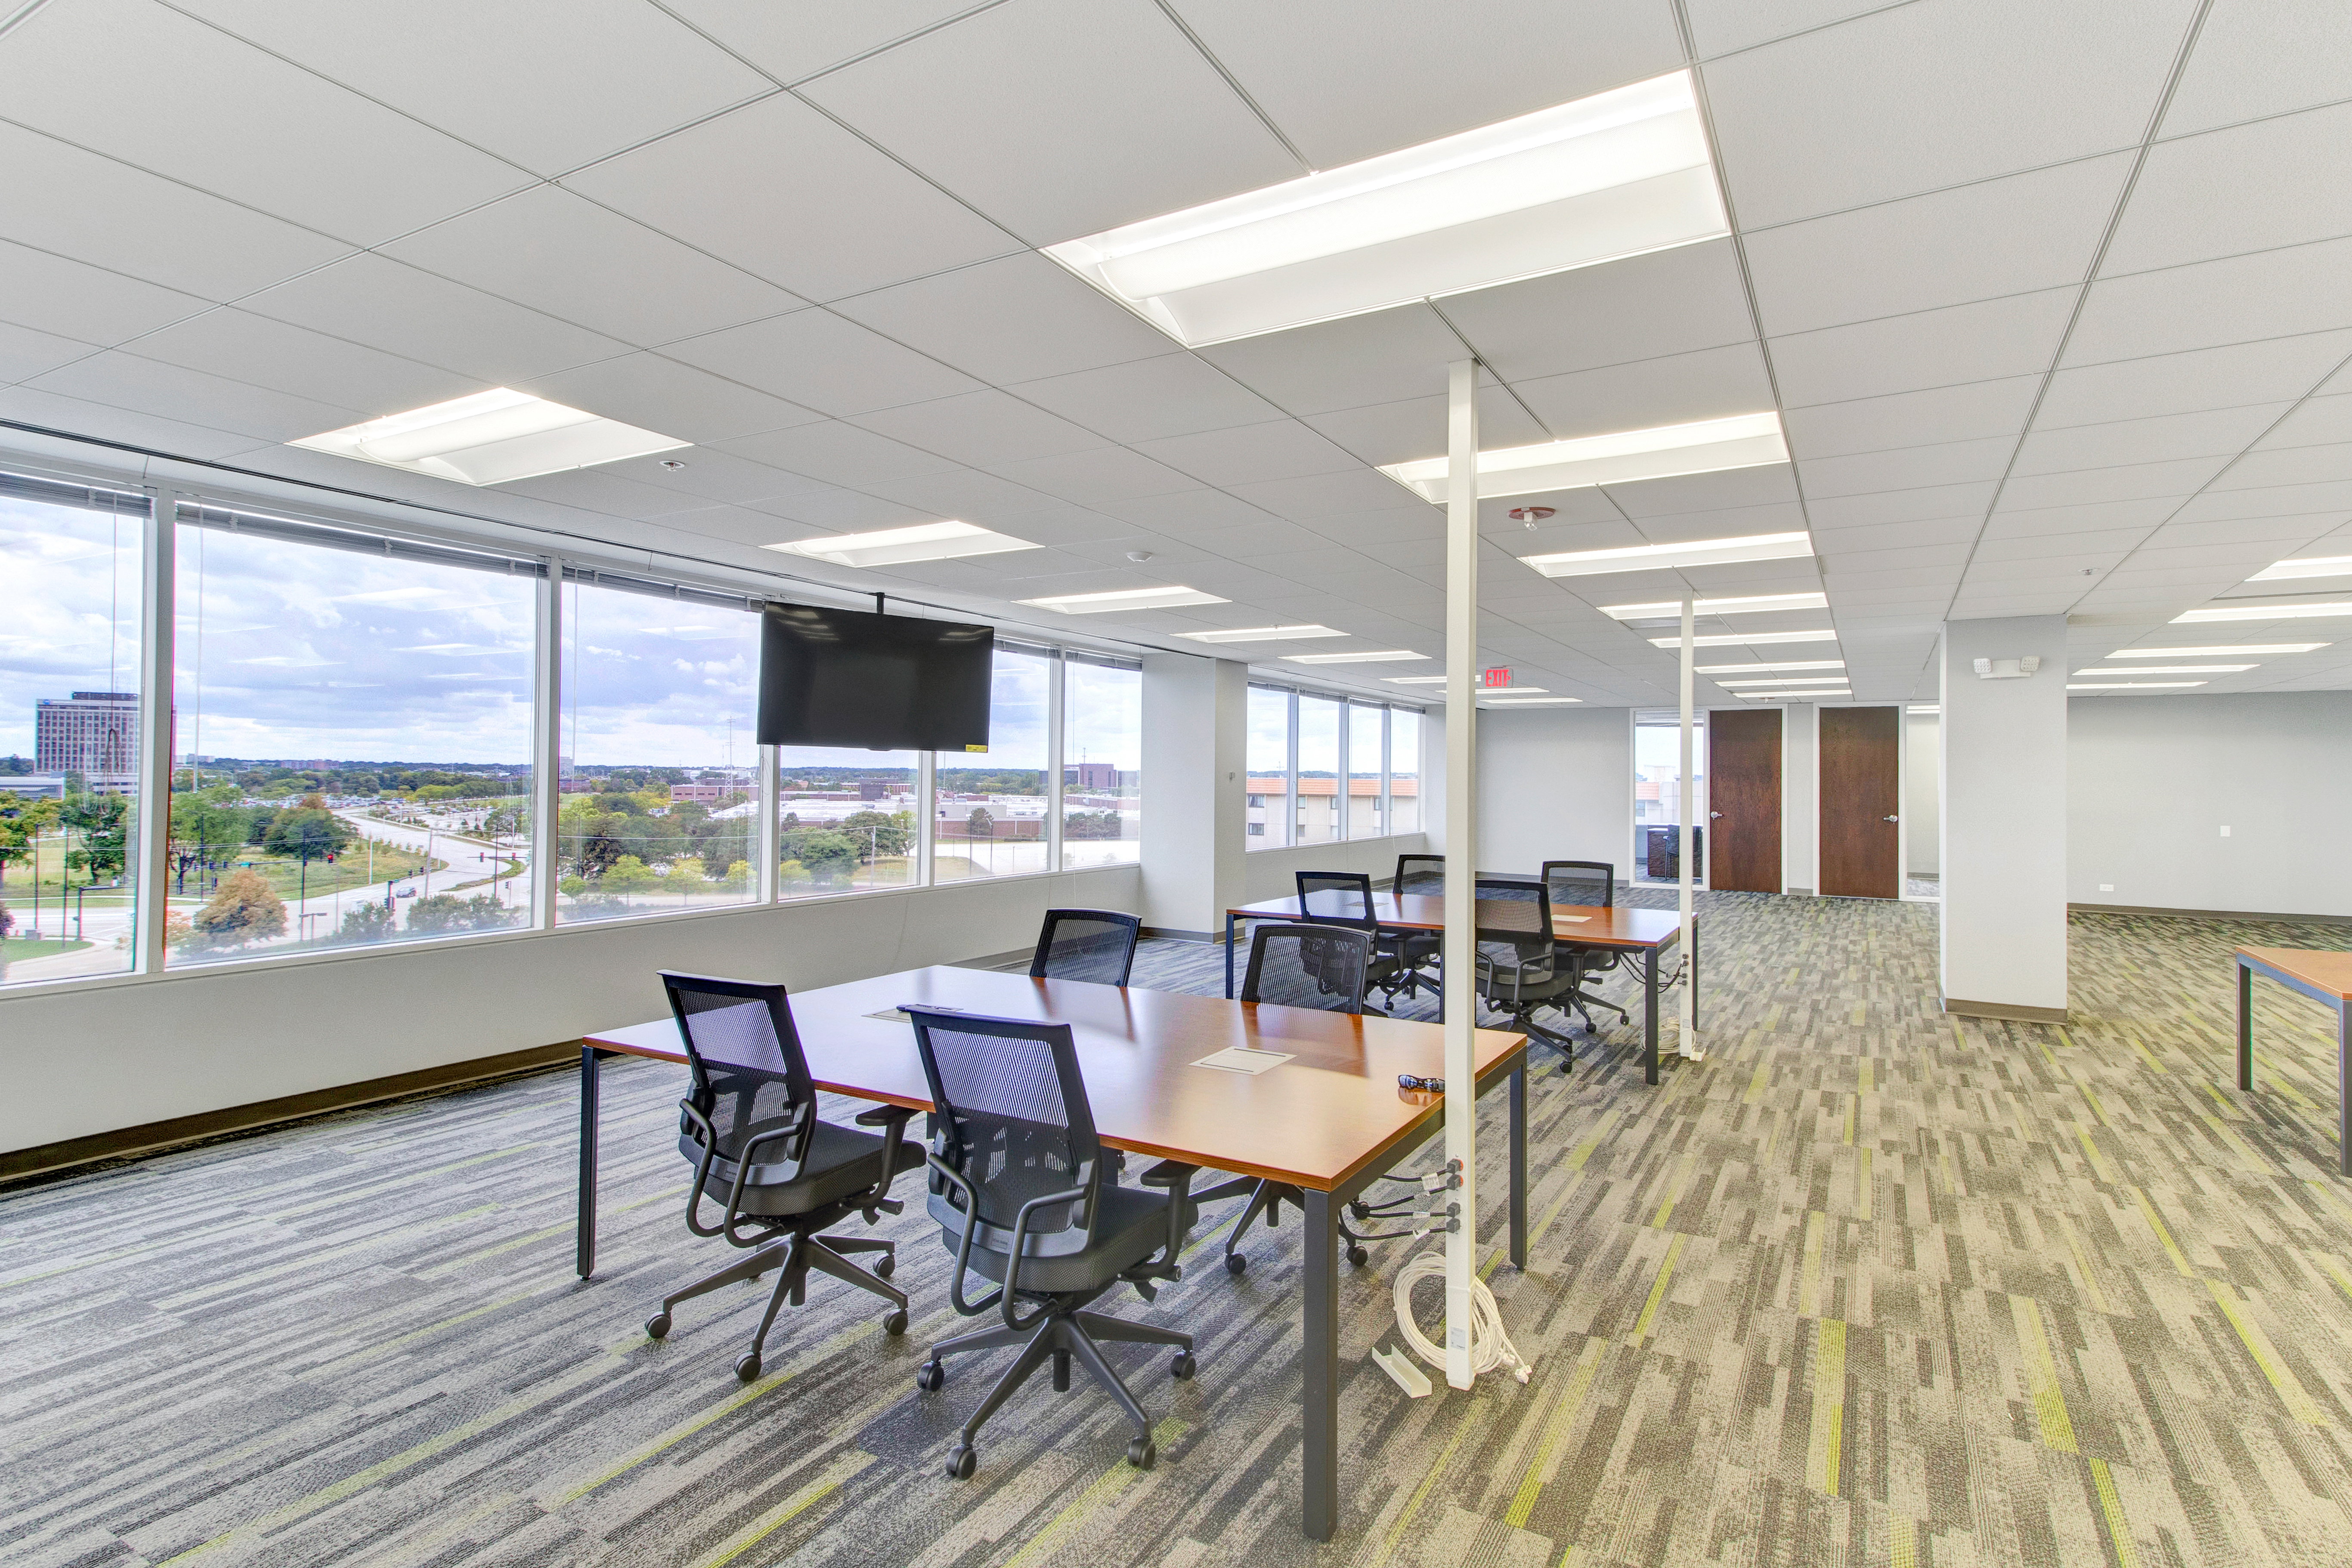 office flooring tiles grey contact us today for the finest in carpet tile and installation this schaumburg office space is an outstanding example of our on going work product mannington elevation carpet tiles transform office space